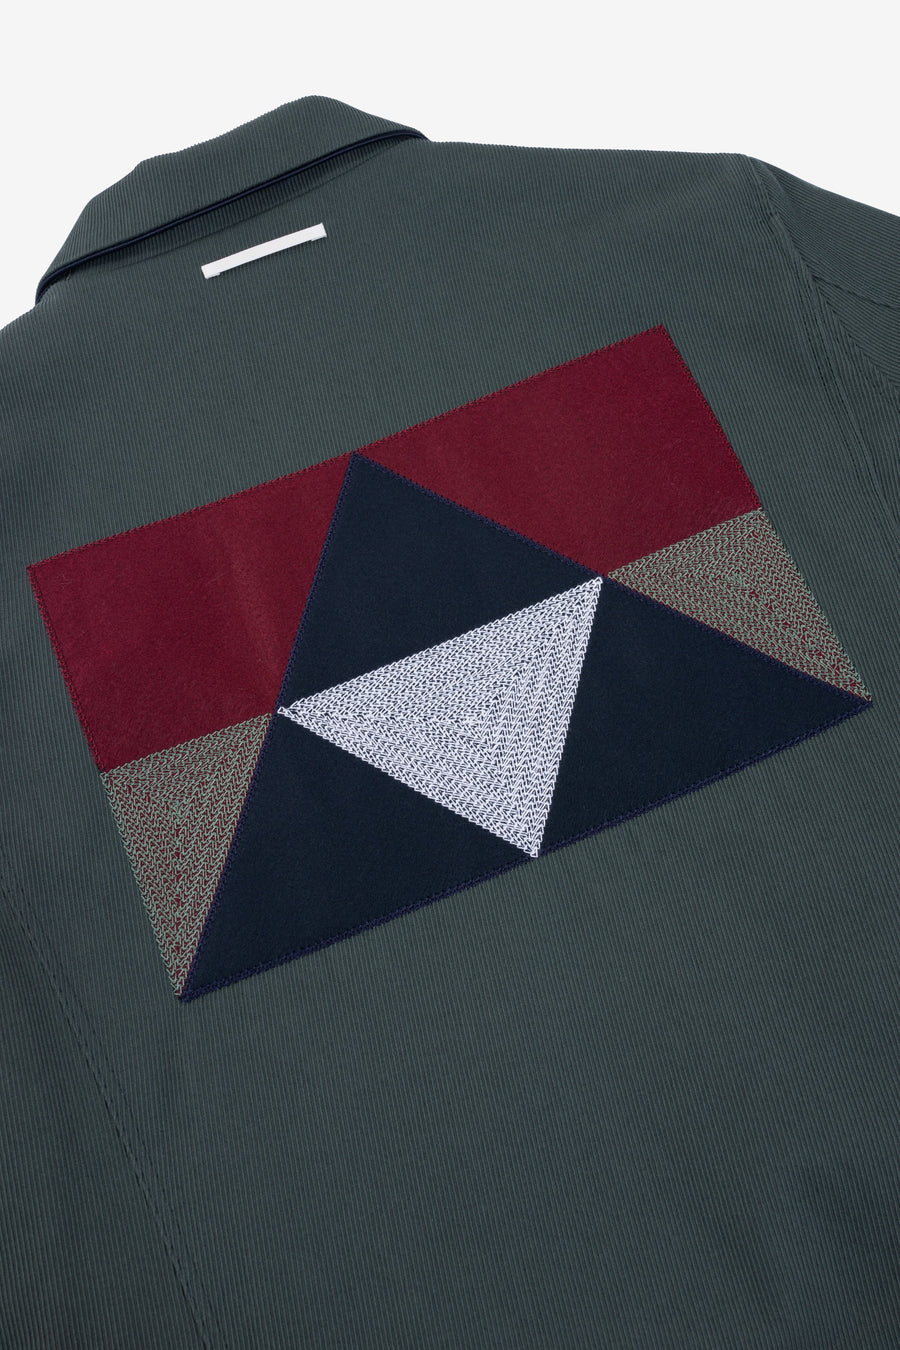 FALCON JACKET w EMBROIDERY